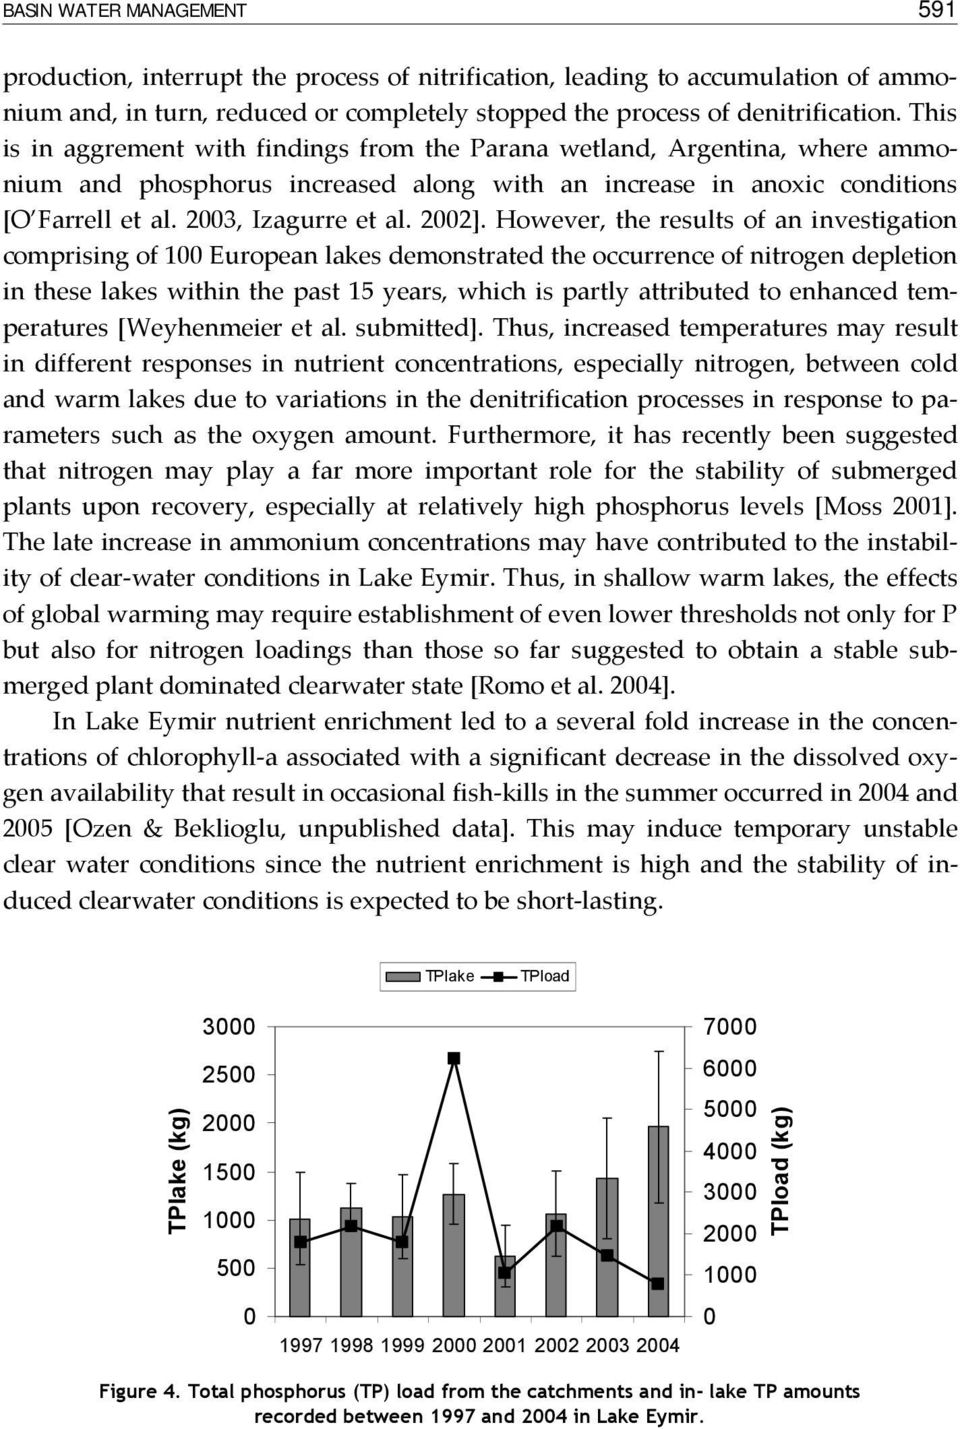 However, the results of an investigation comprising of 1 European lakes demonstrated the occurrence of nitrogen depletion in these lakes within the past 15 years, which is partly attributed to